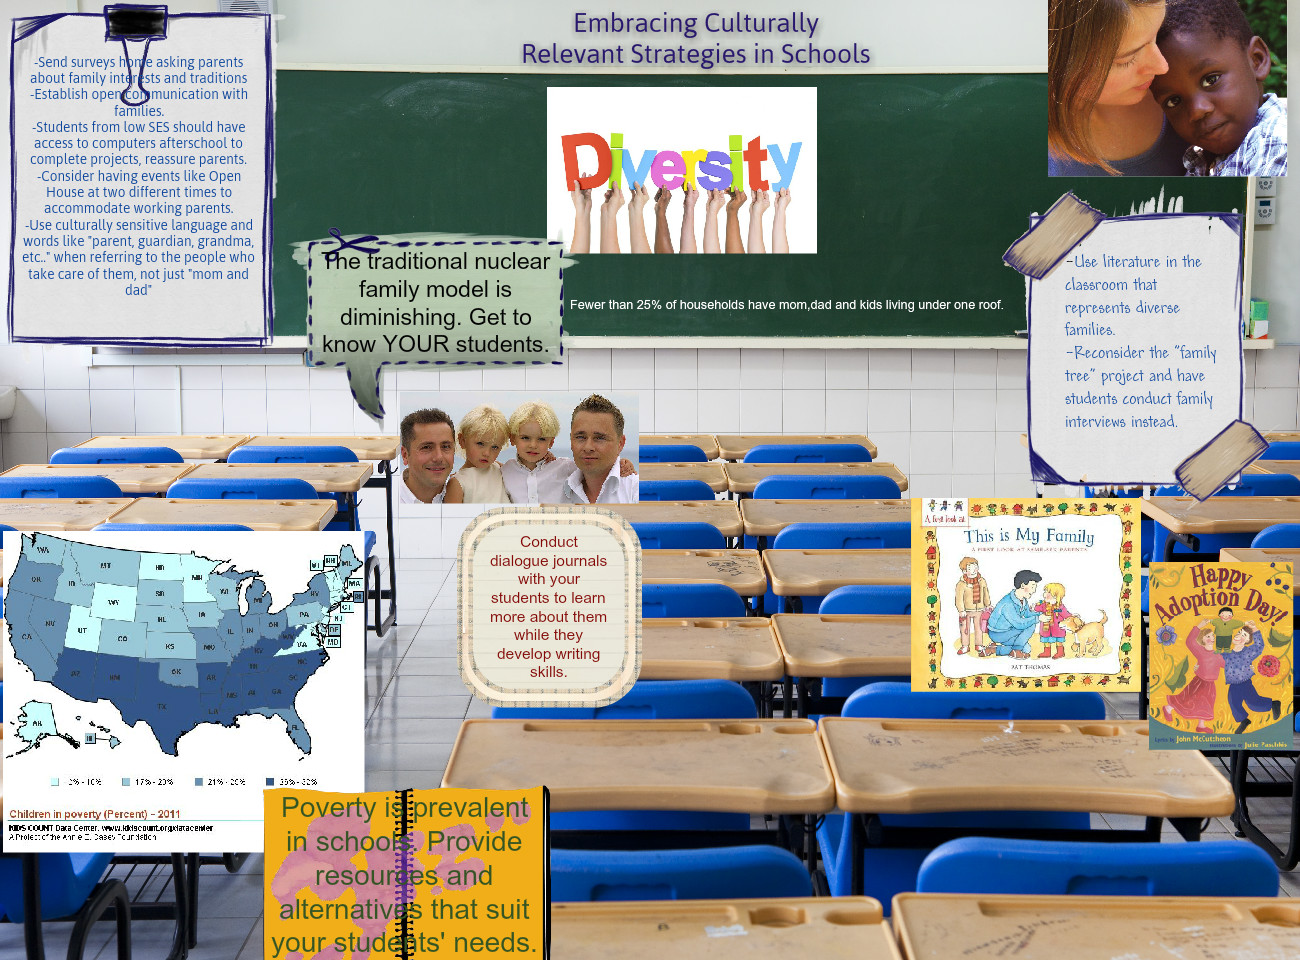 Building Culturally Relevant Partnerships: text, images